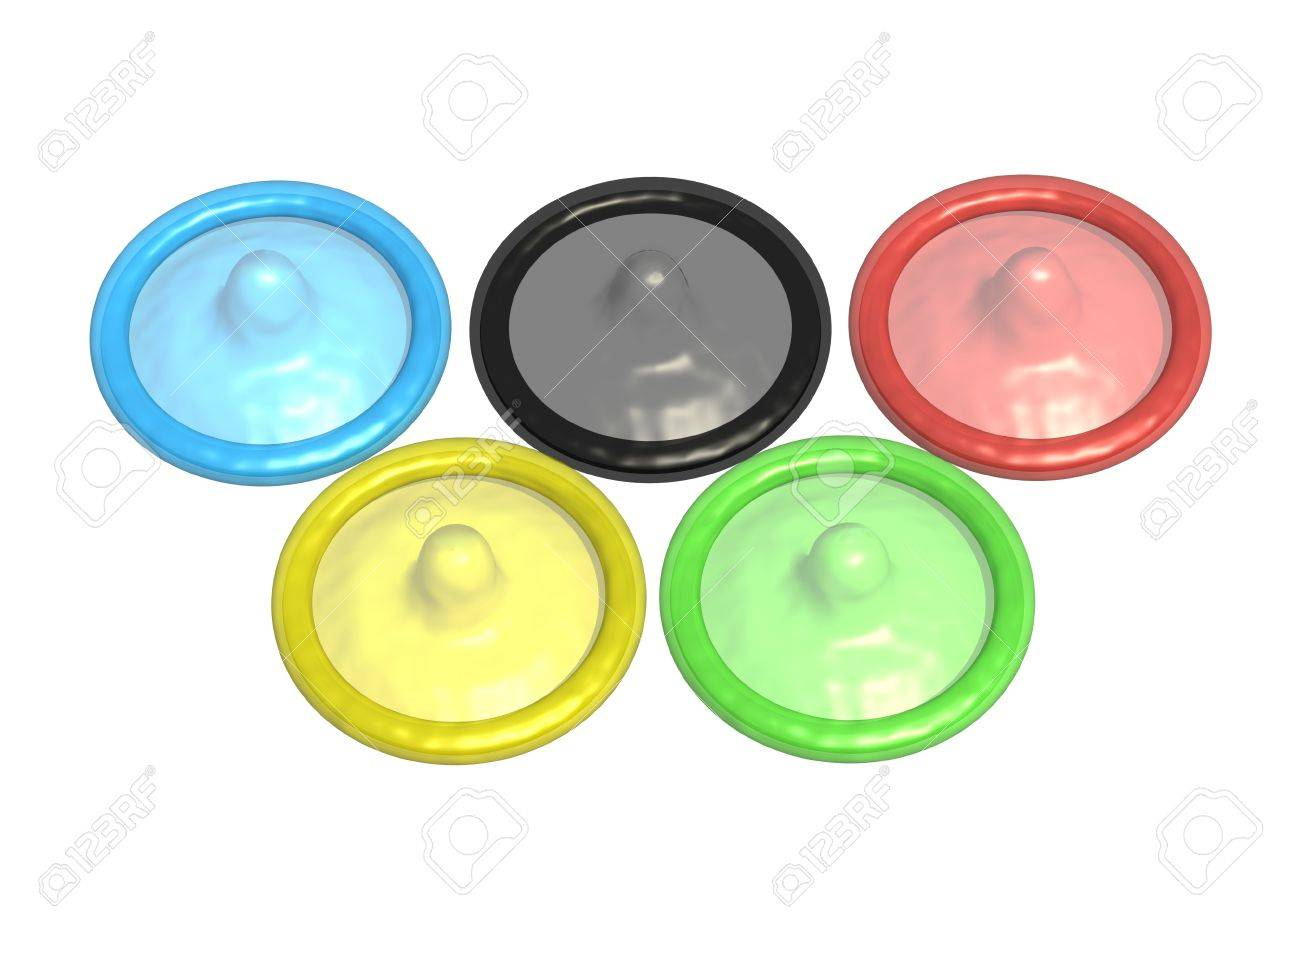 Five colored condoms that make up the symbol of the olympic games five colored condoms that make up the symbol of the olympic games stock photo 16832482 biocorpaavc Images